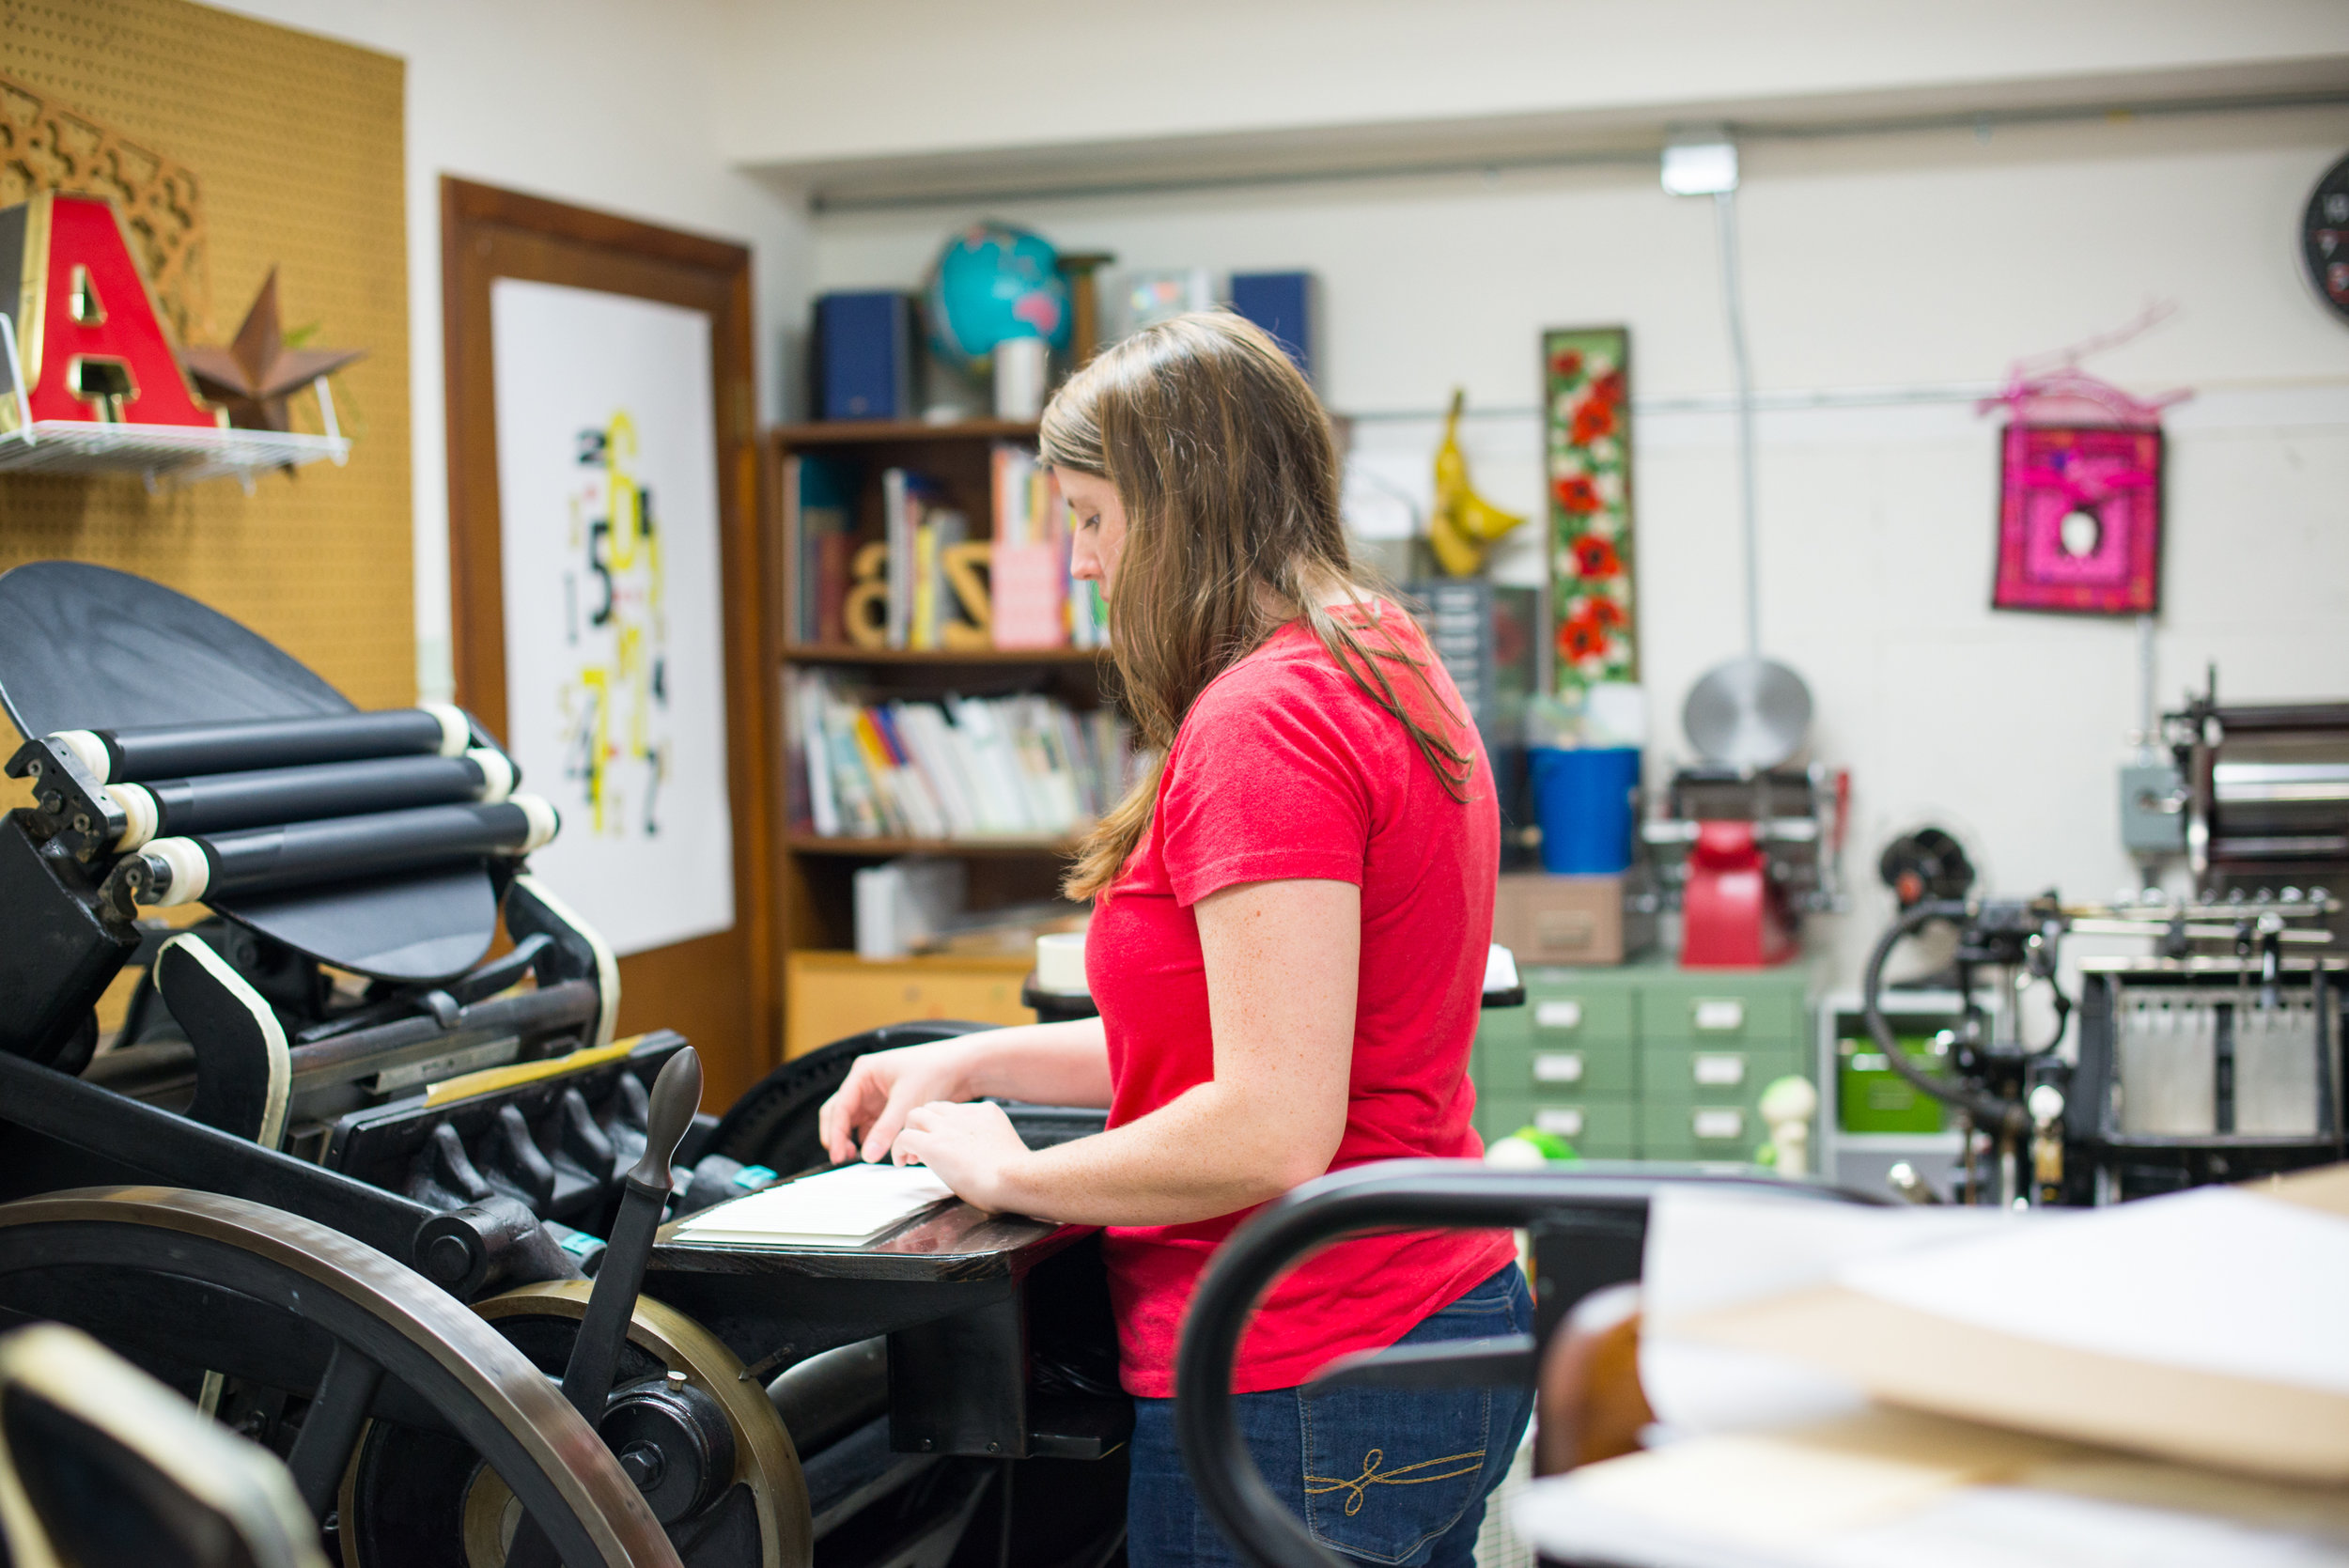 Claire of Hyde & Seek Press works on a printing job for a client. The letterpress printer stands next to the press throughout the entire process and hand-feeds each piece of paper into the press.  LAURA BARNES PHOTO.